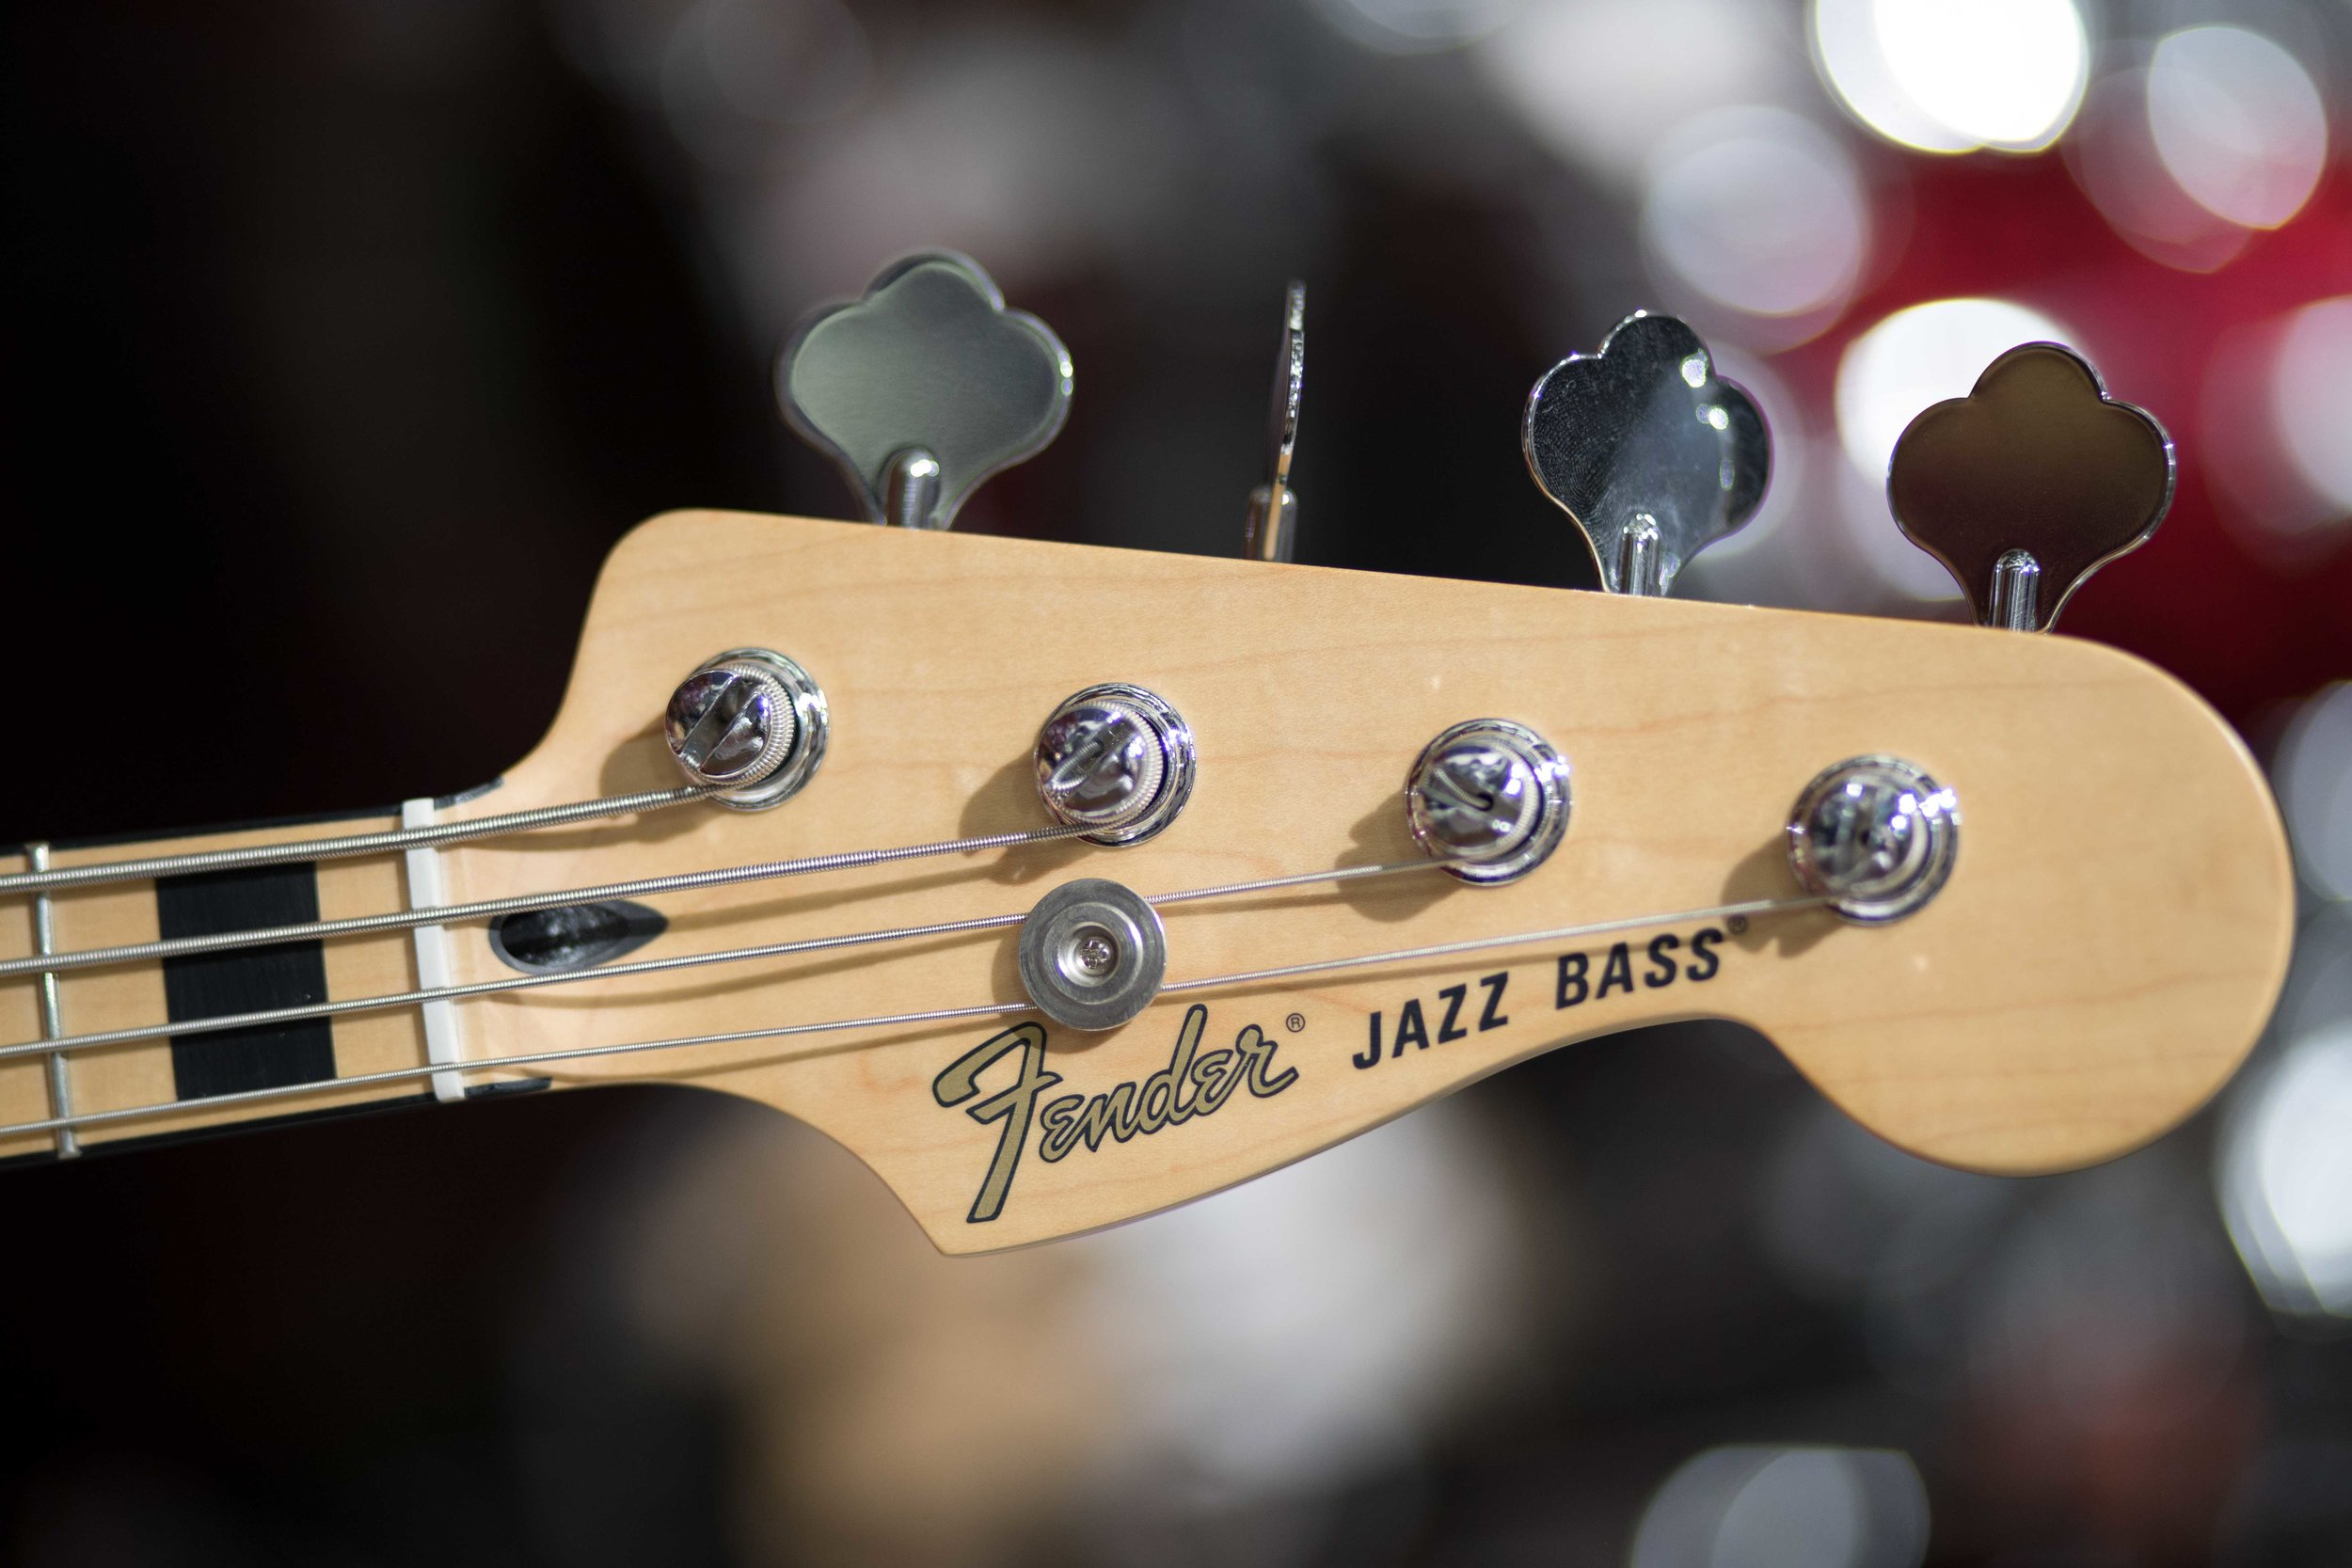 Jazz-Bass-rev-a.jpg